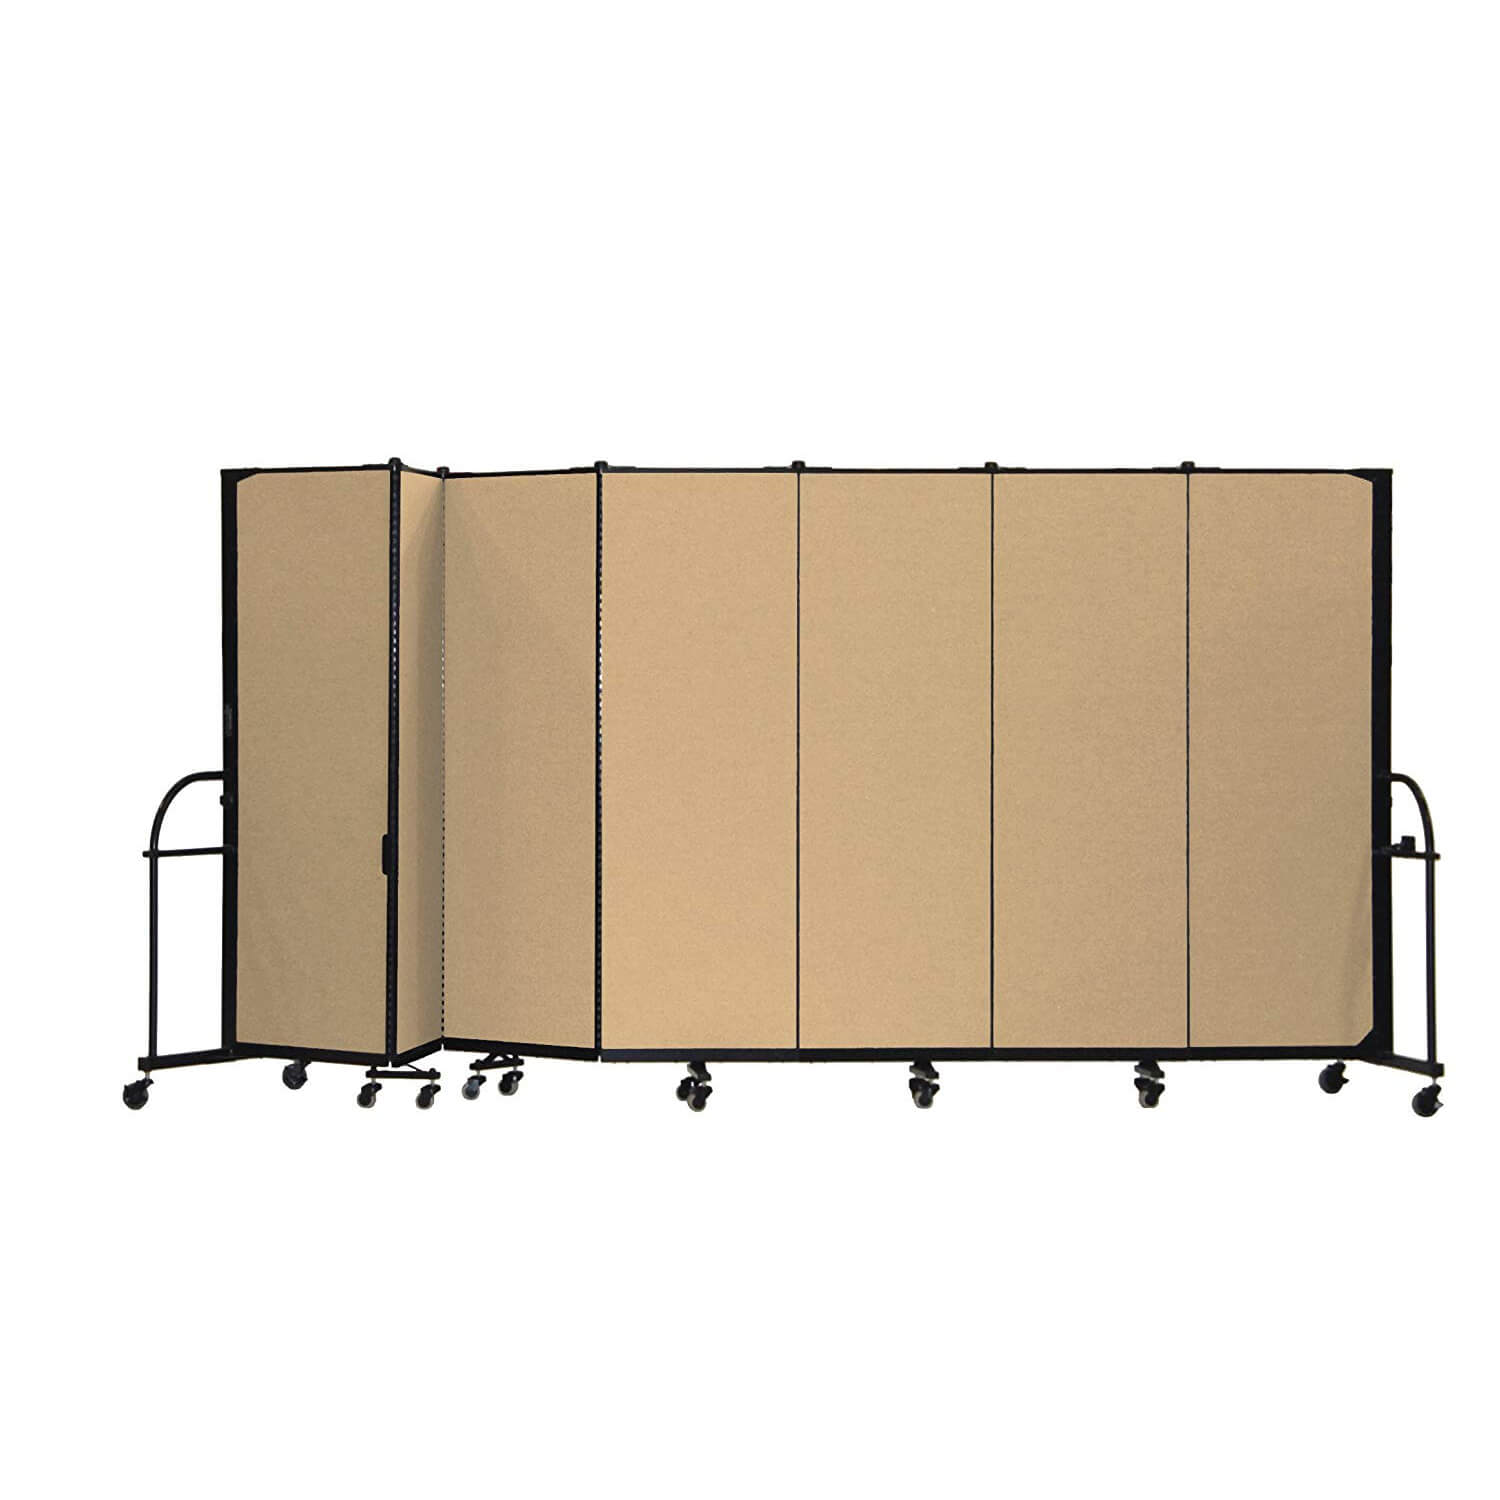 Panel room dividers CUB QSCFSL607DW RCS